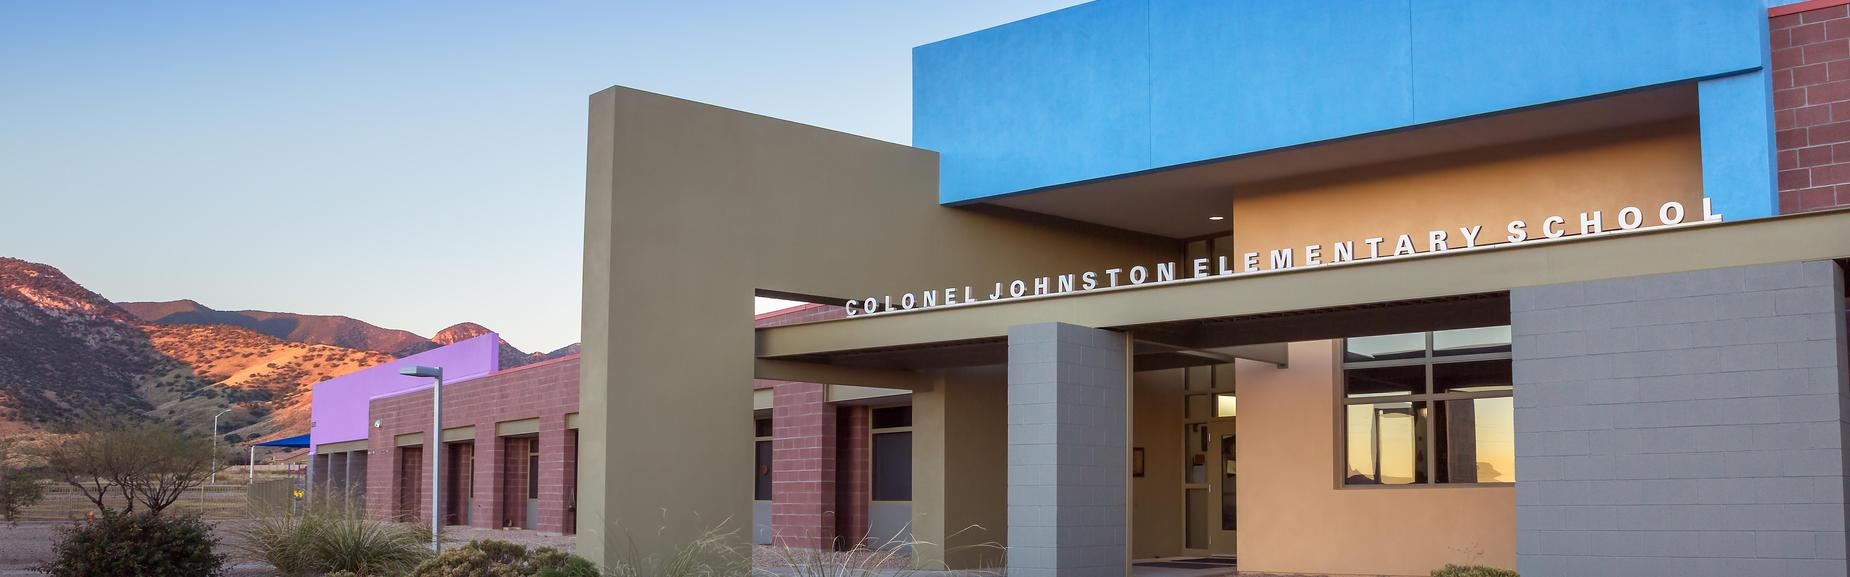 Colonel Johnston Elementary